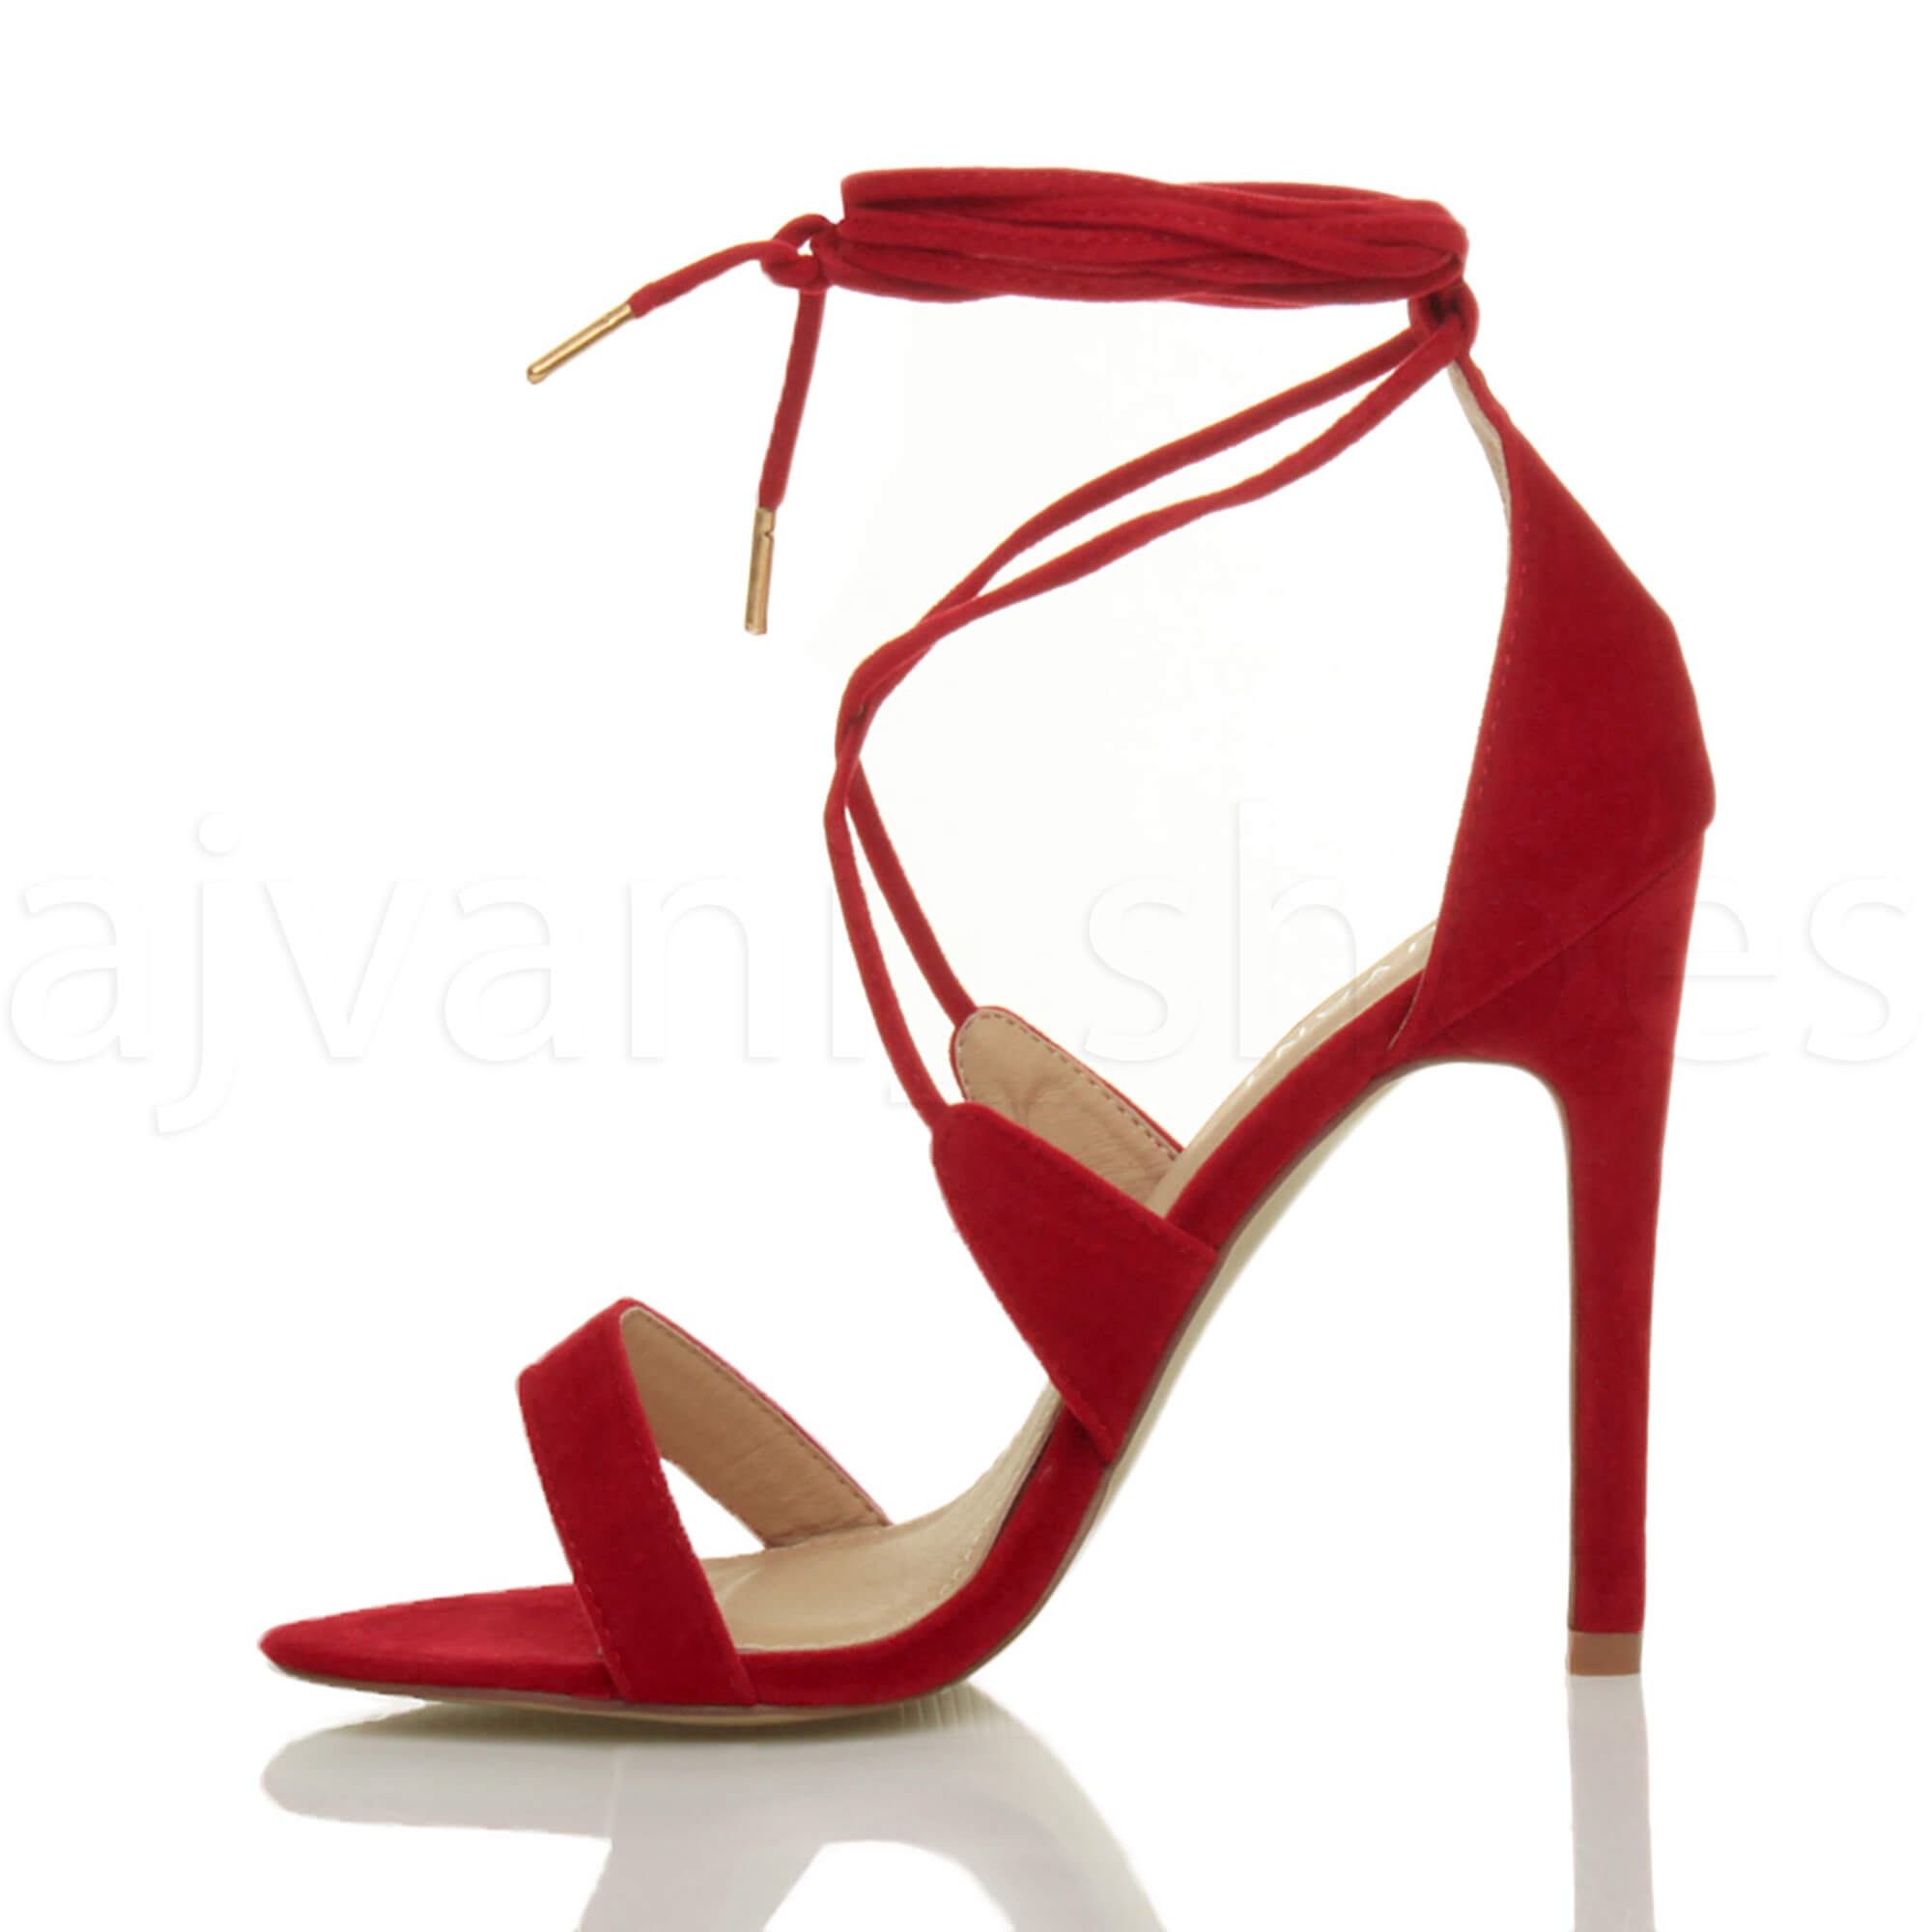 WOMENS-LADIES-HIGH-HEEL-BARELY-THERE-STRAPPY-LACE-TIE-UP-SANDALS-SHOES-SIZE